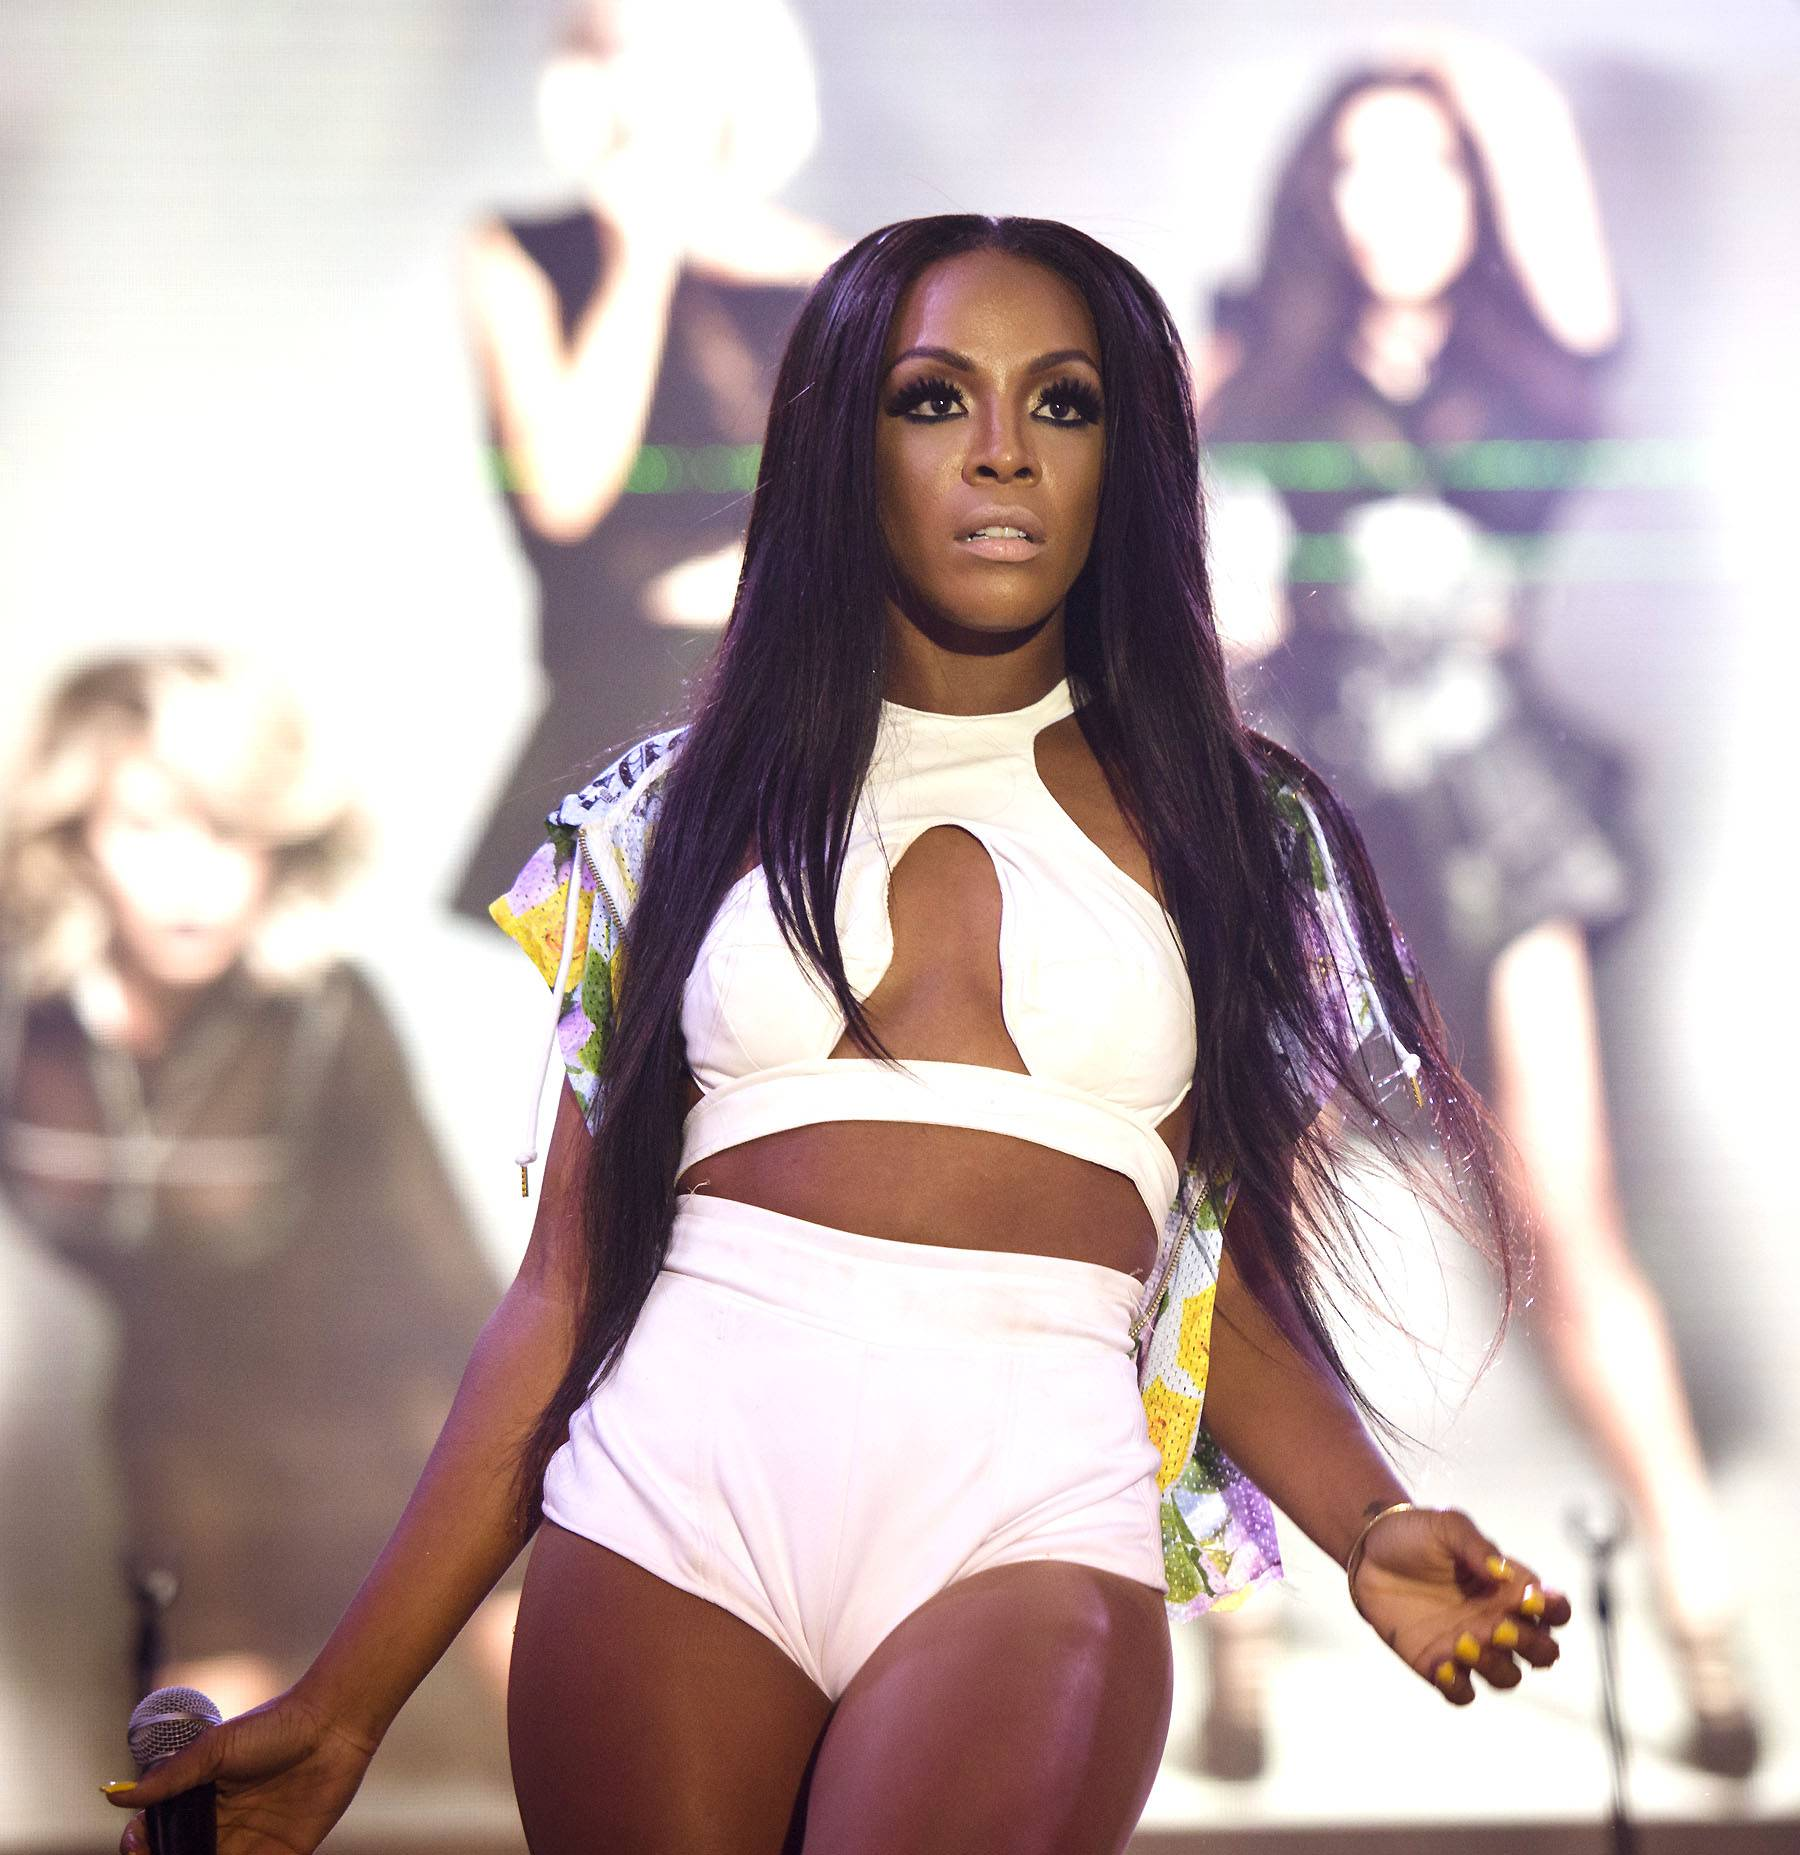 Dawn Richard Denies Plastic Surgery - Dawn Richard stopped by The Breakfast Club to chat about what she has and hasn't been up to lately. One of the things she claims she hasn't been doing is getting plastic surgery despite the rumors. Either way, she's looking good!   (Photo: Chelsea Guglielmino/Getty Images)